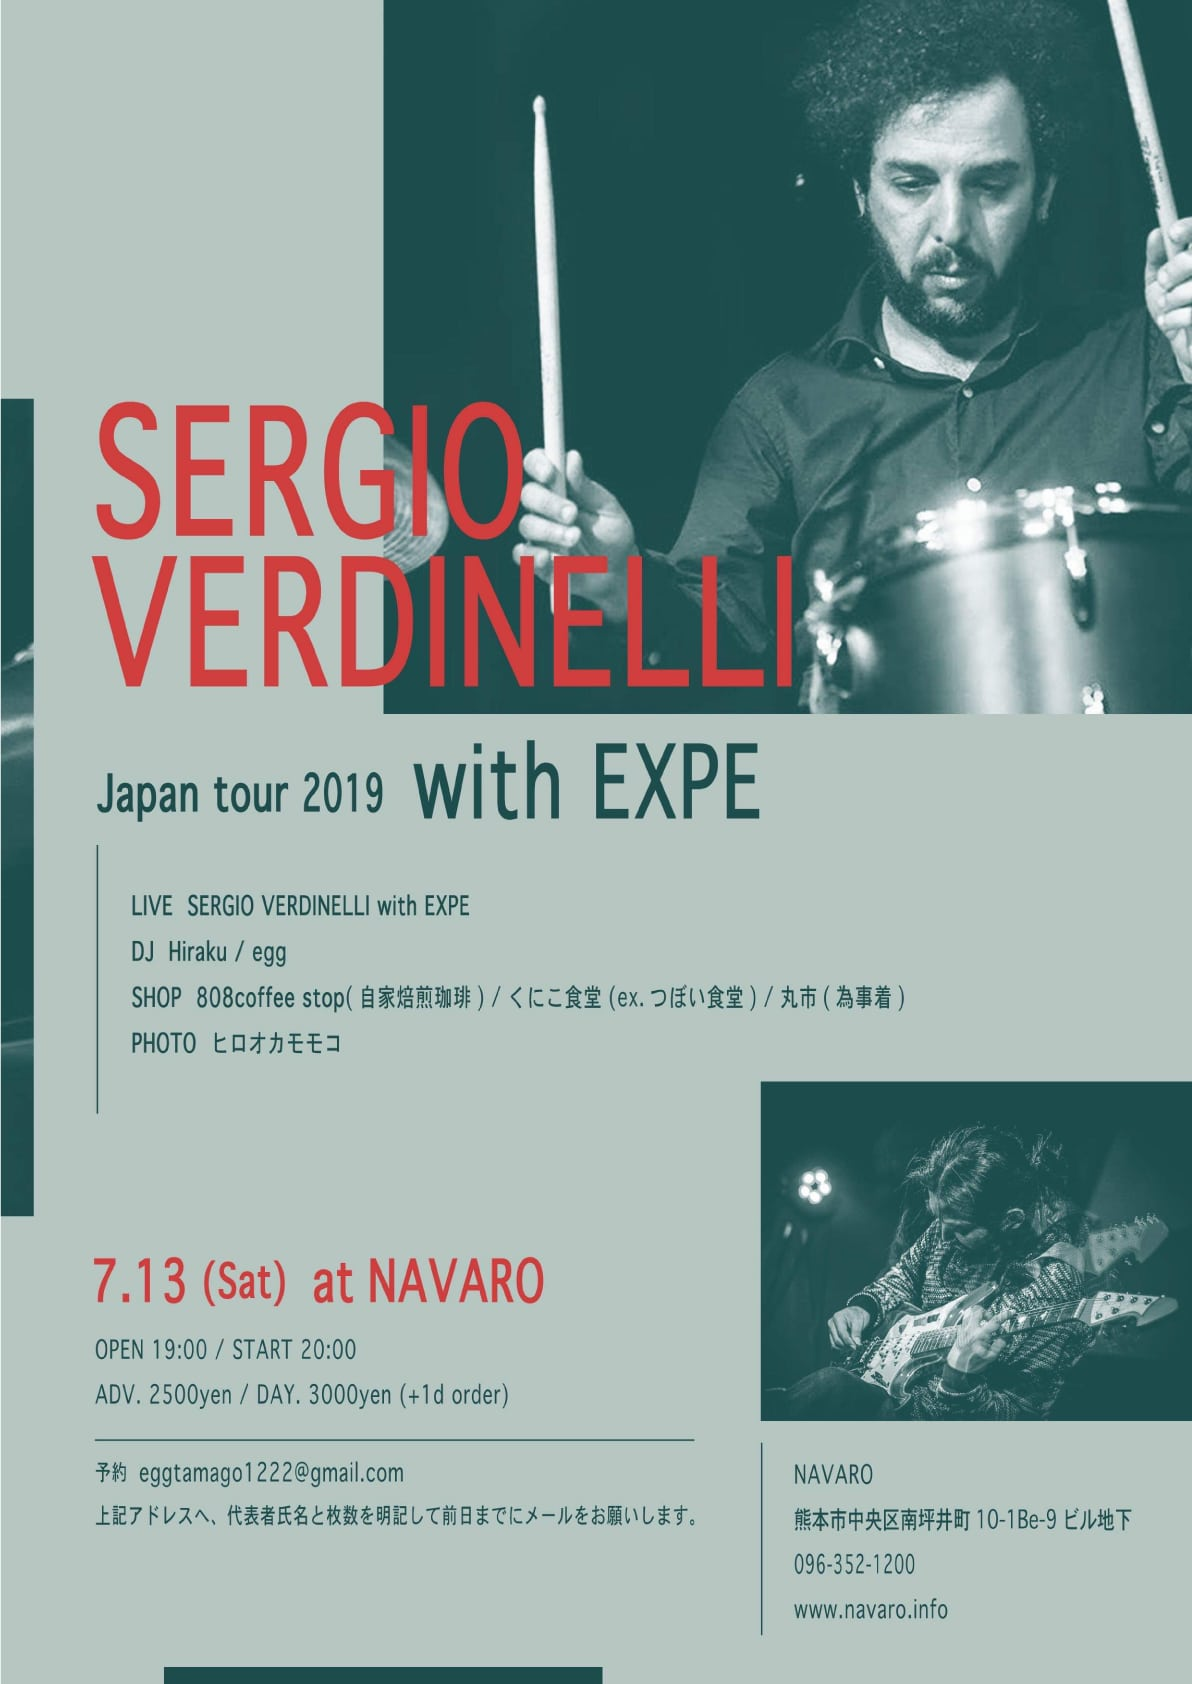 Sergio Verdinelli japan tour2019 with EXPE In navaroチラシ1